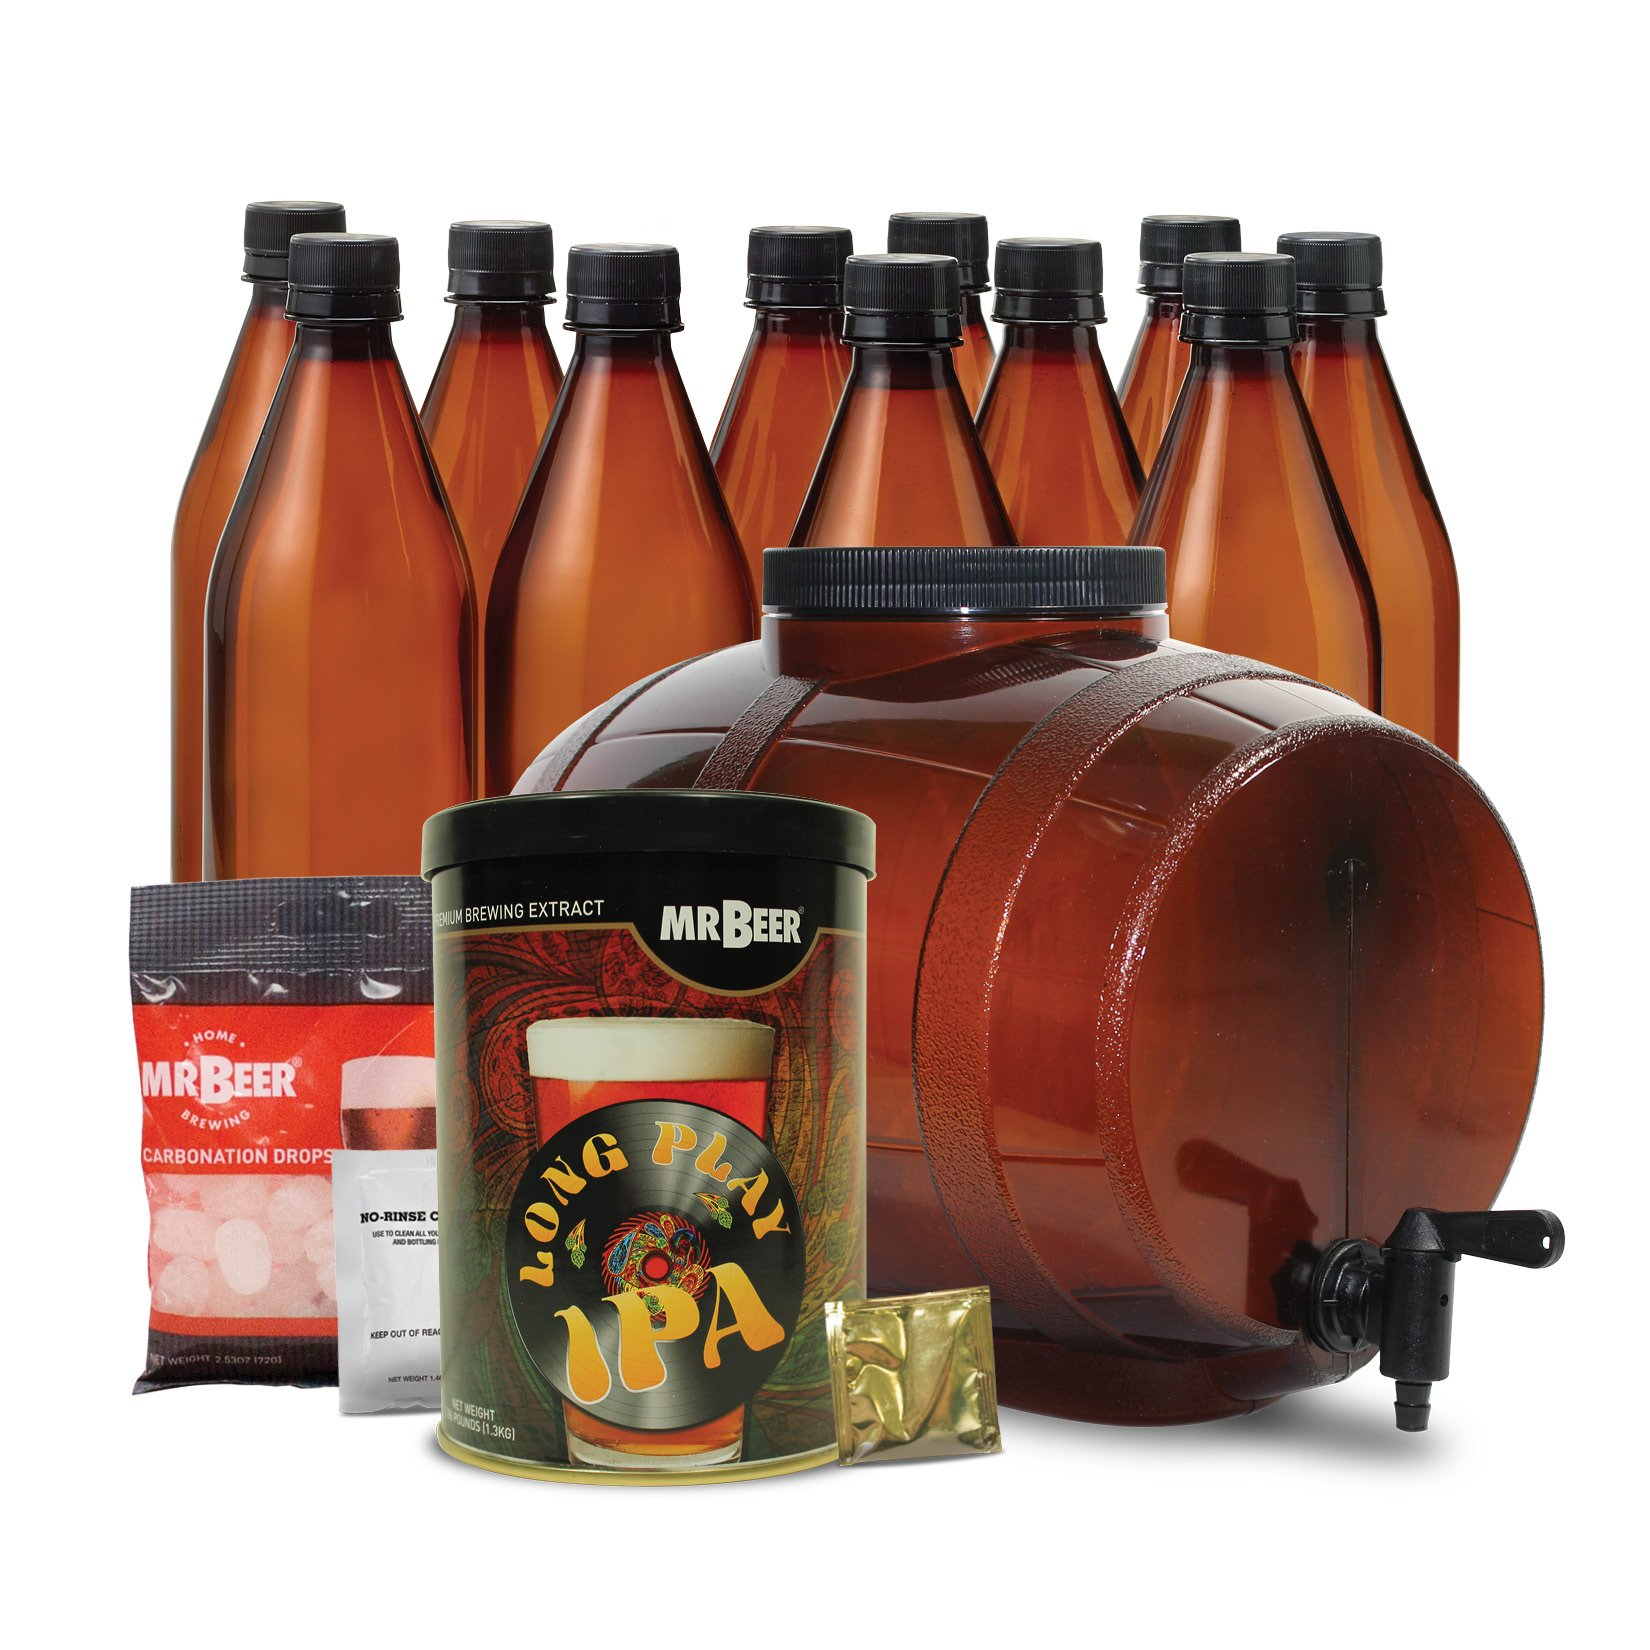 Mr. Beer IPA Edition 2 Gallon Homebrewing Craft Beer Making Kit with All Grain Extract Beer Refill and Convenient 2 Gallon Fermenter by Mr. Beer